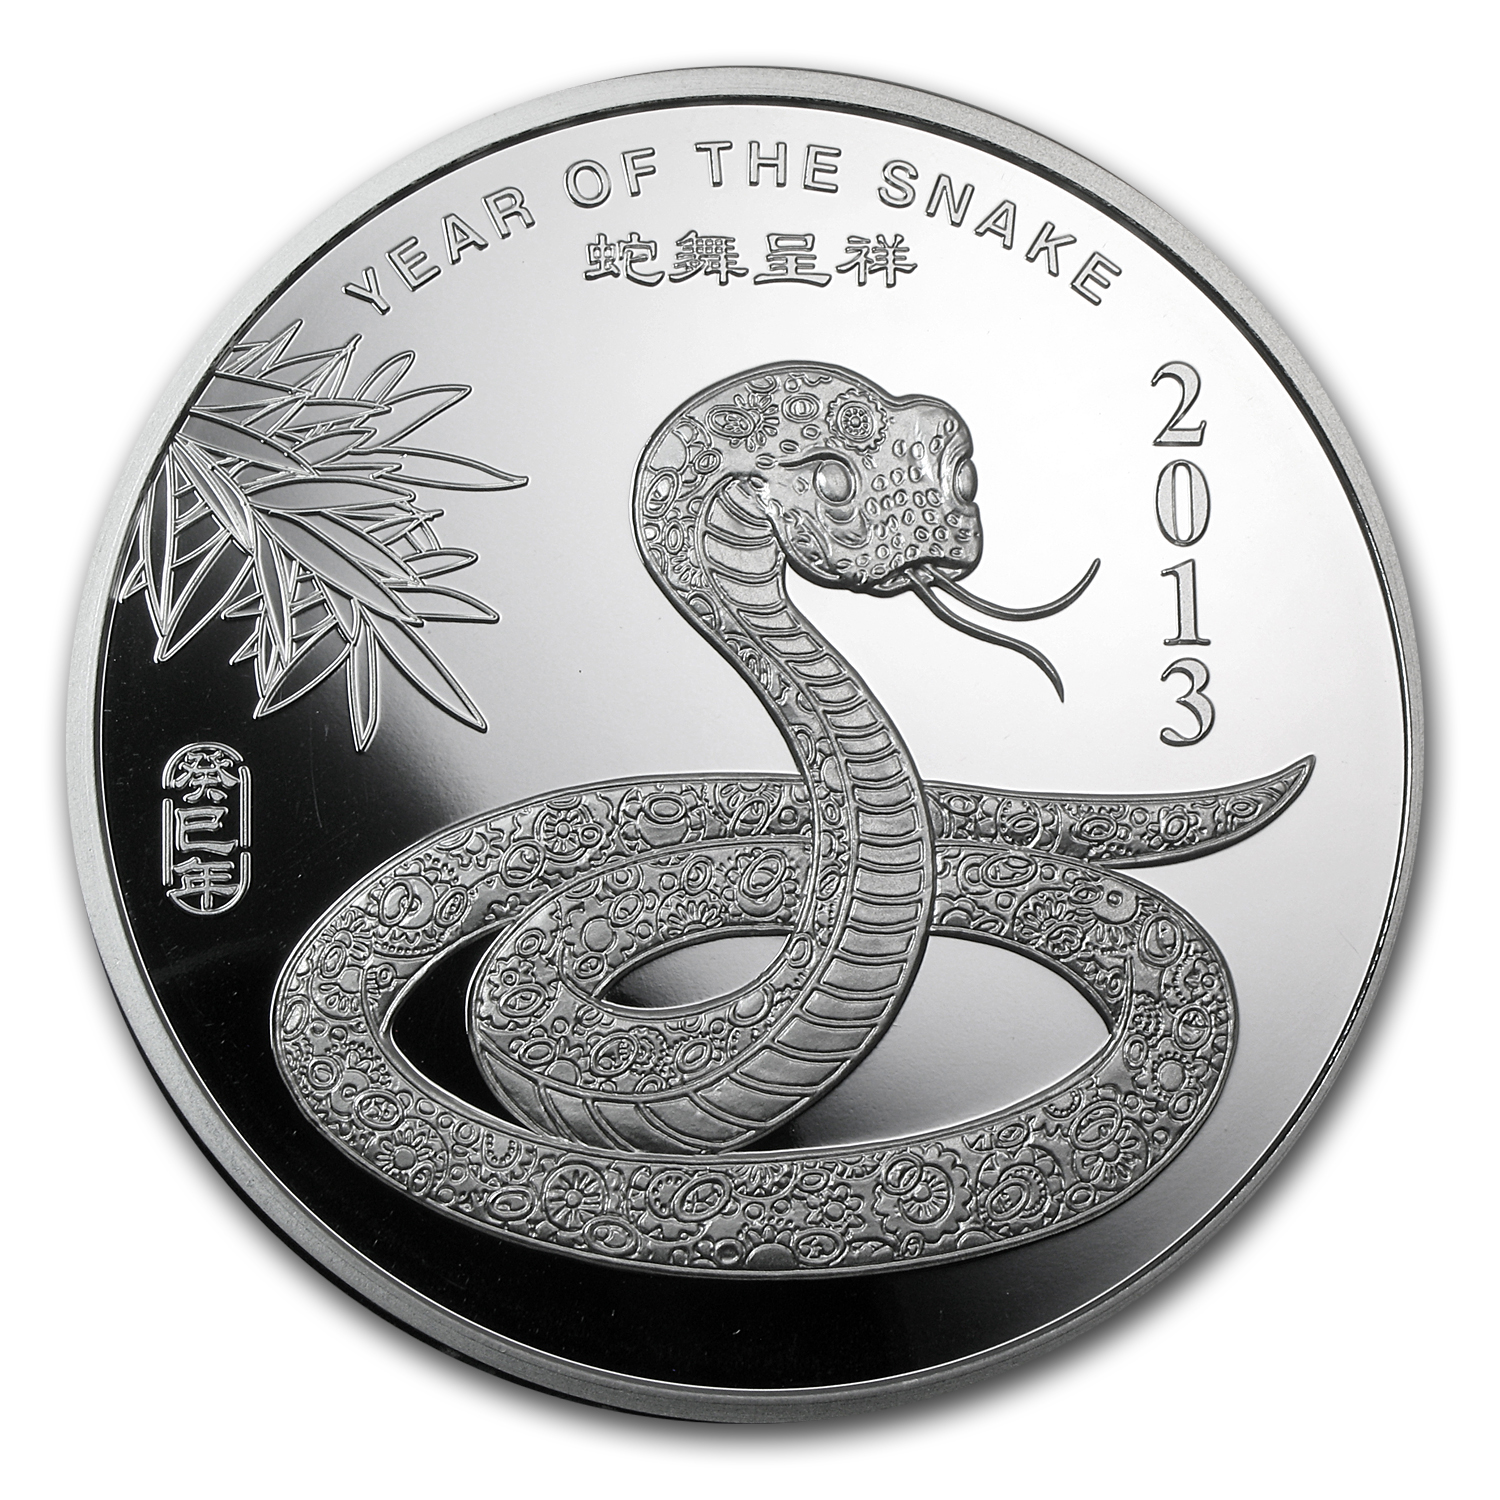 5 oz Silver Rounds - APMEX (2013 Year of the Snake)